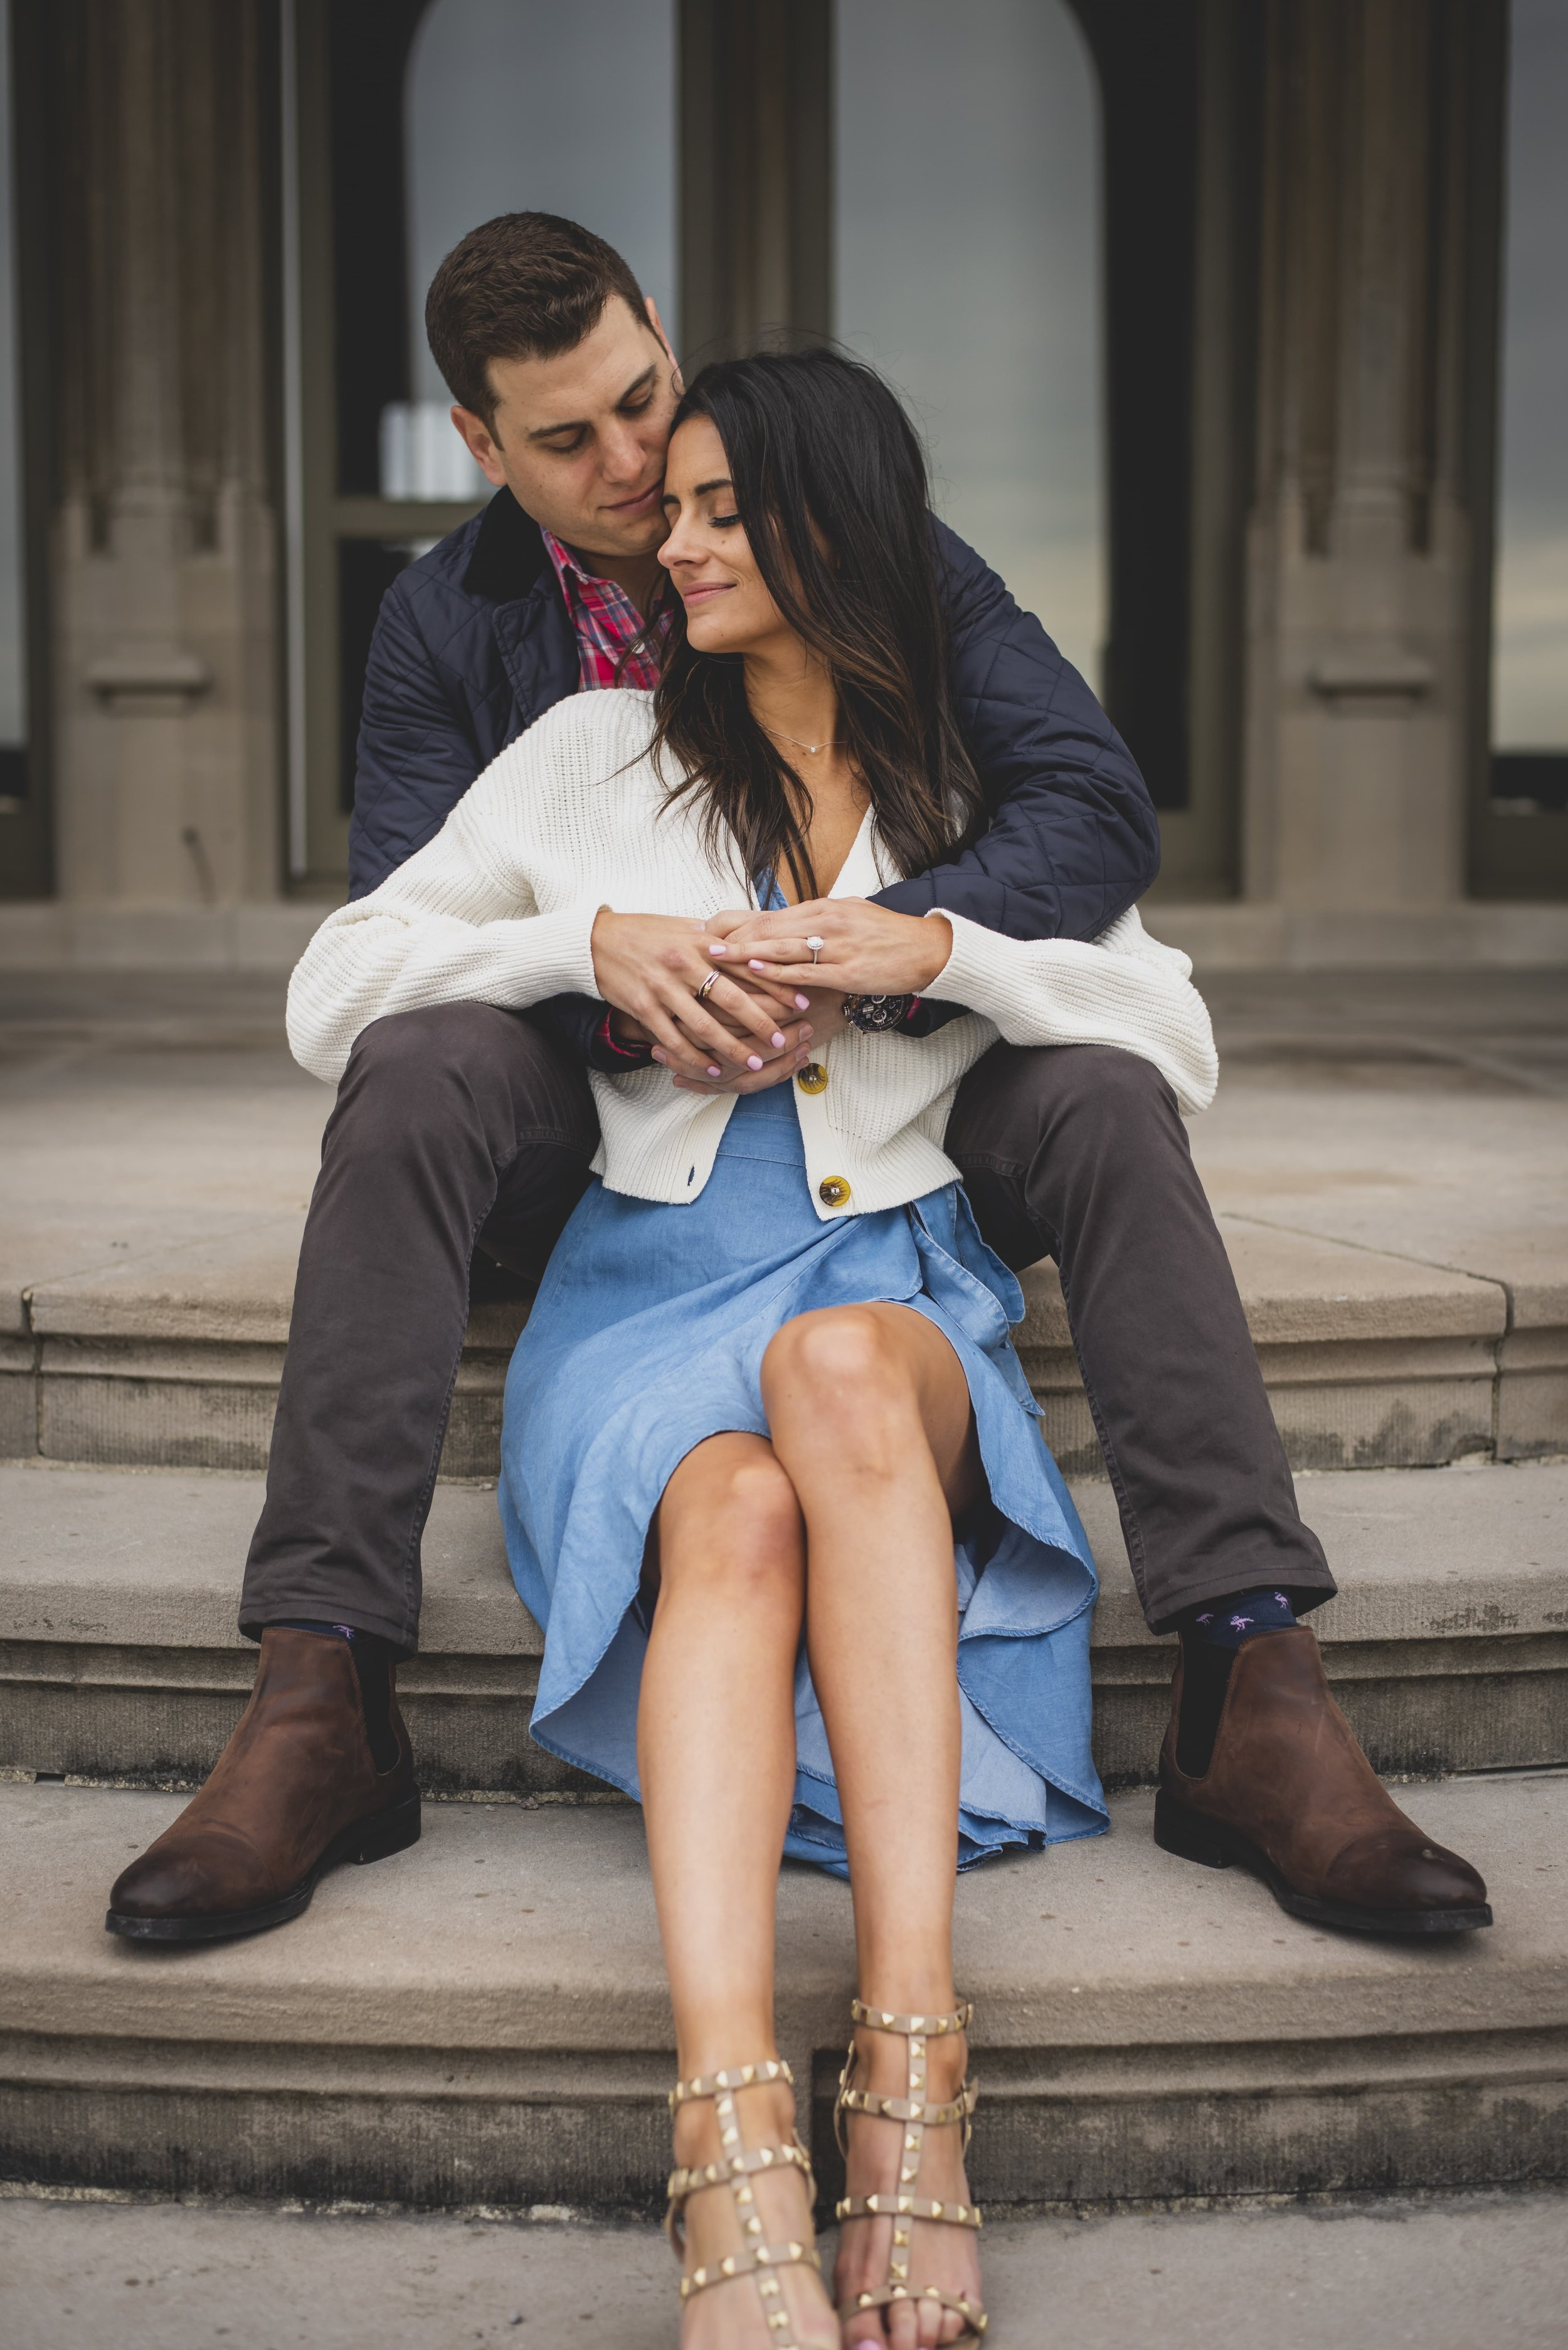 Engagement Photography Services - Castle Hill Lighthouse, Newport, RI - Couple sitting together on stone stairs as the future groom holds his future bride.